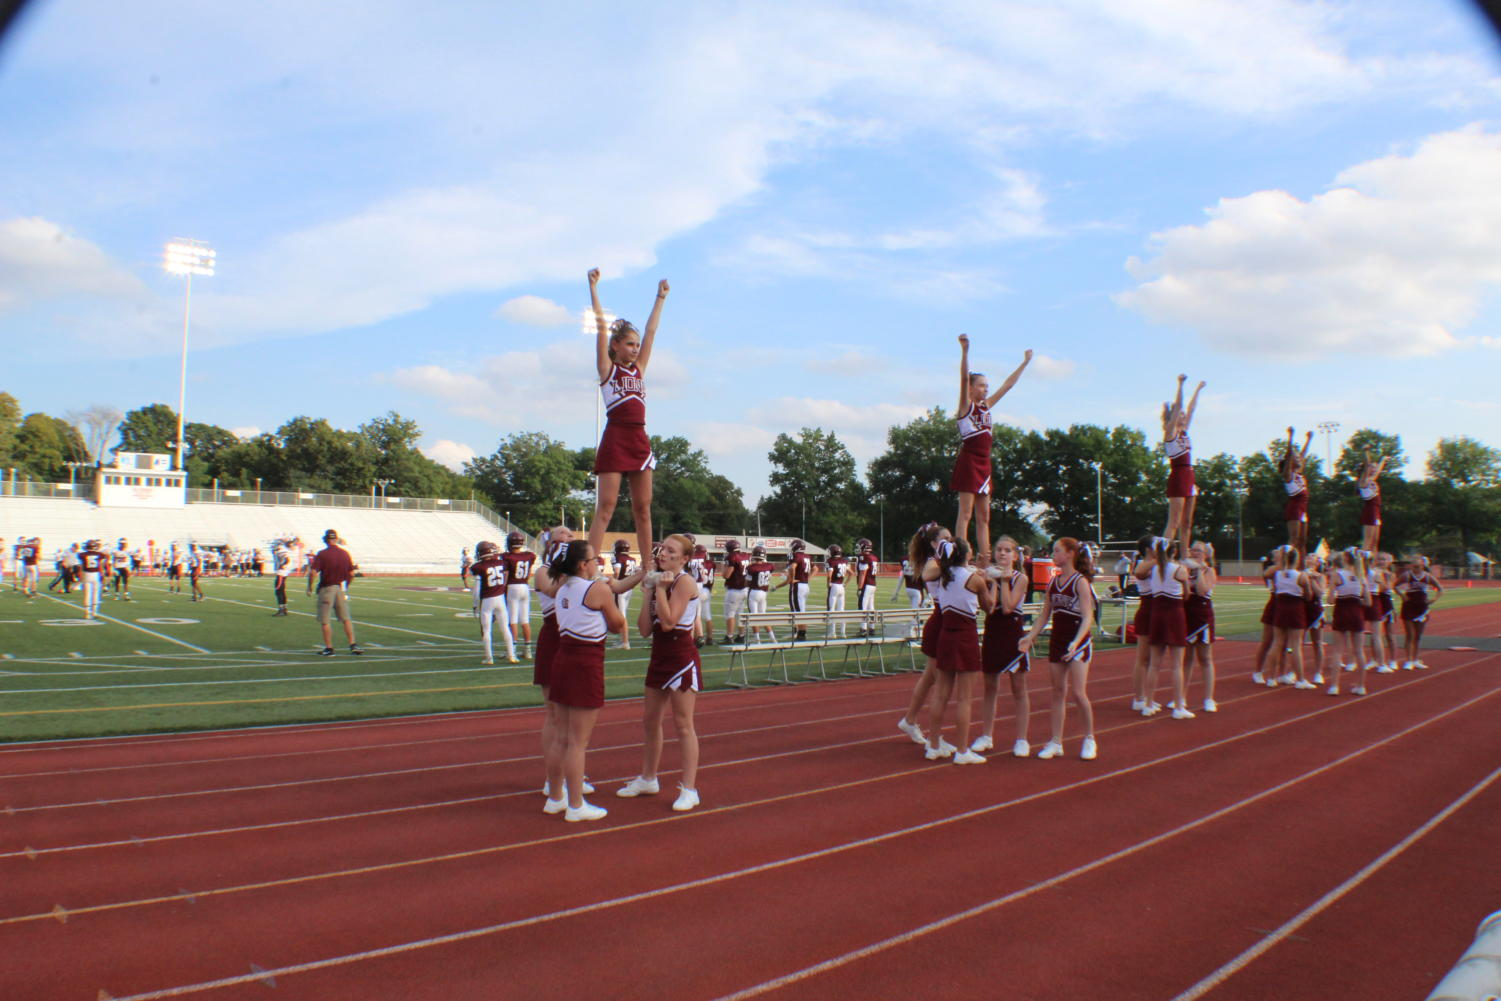 Fly High! The cheerleaders start off the game with some stunts.